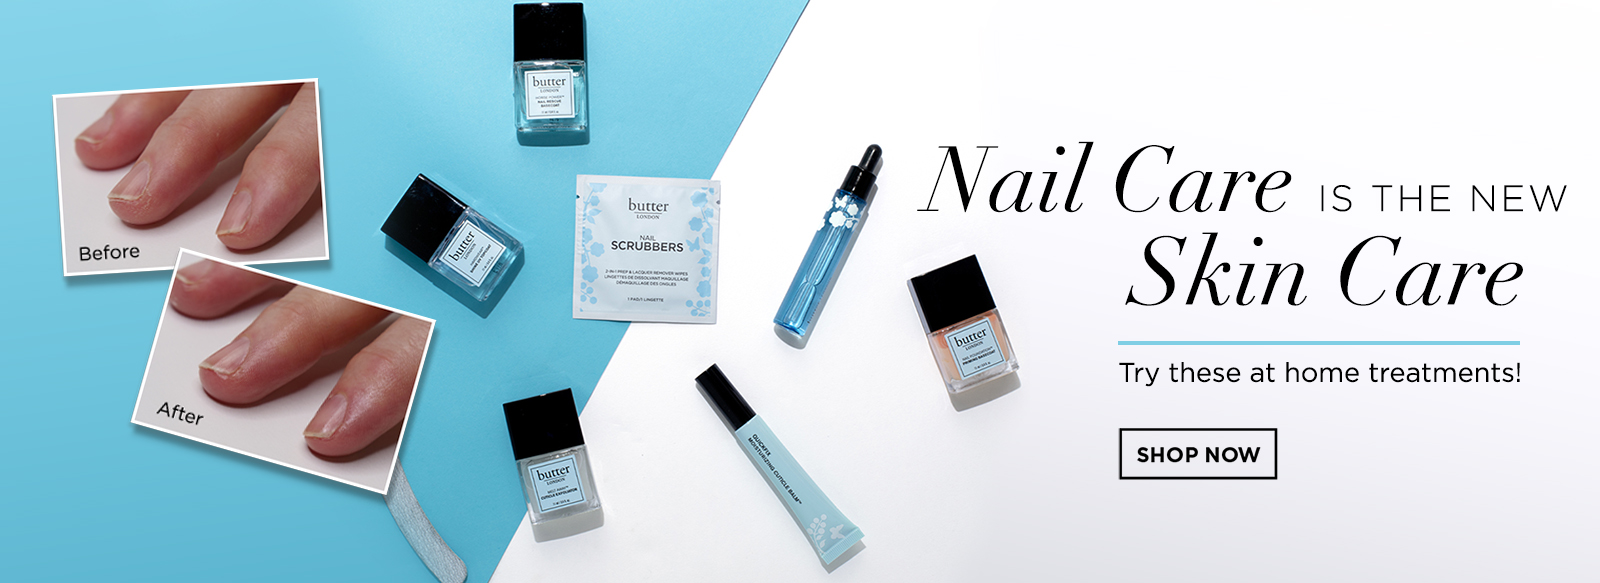 Nail Care is the New Skincare